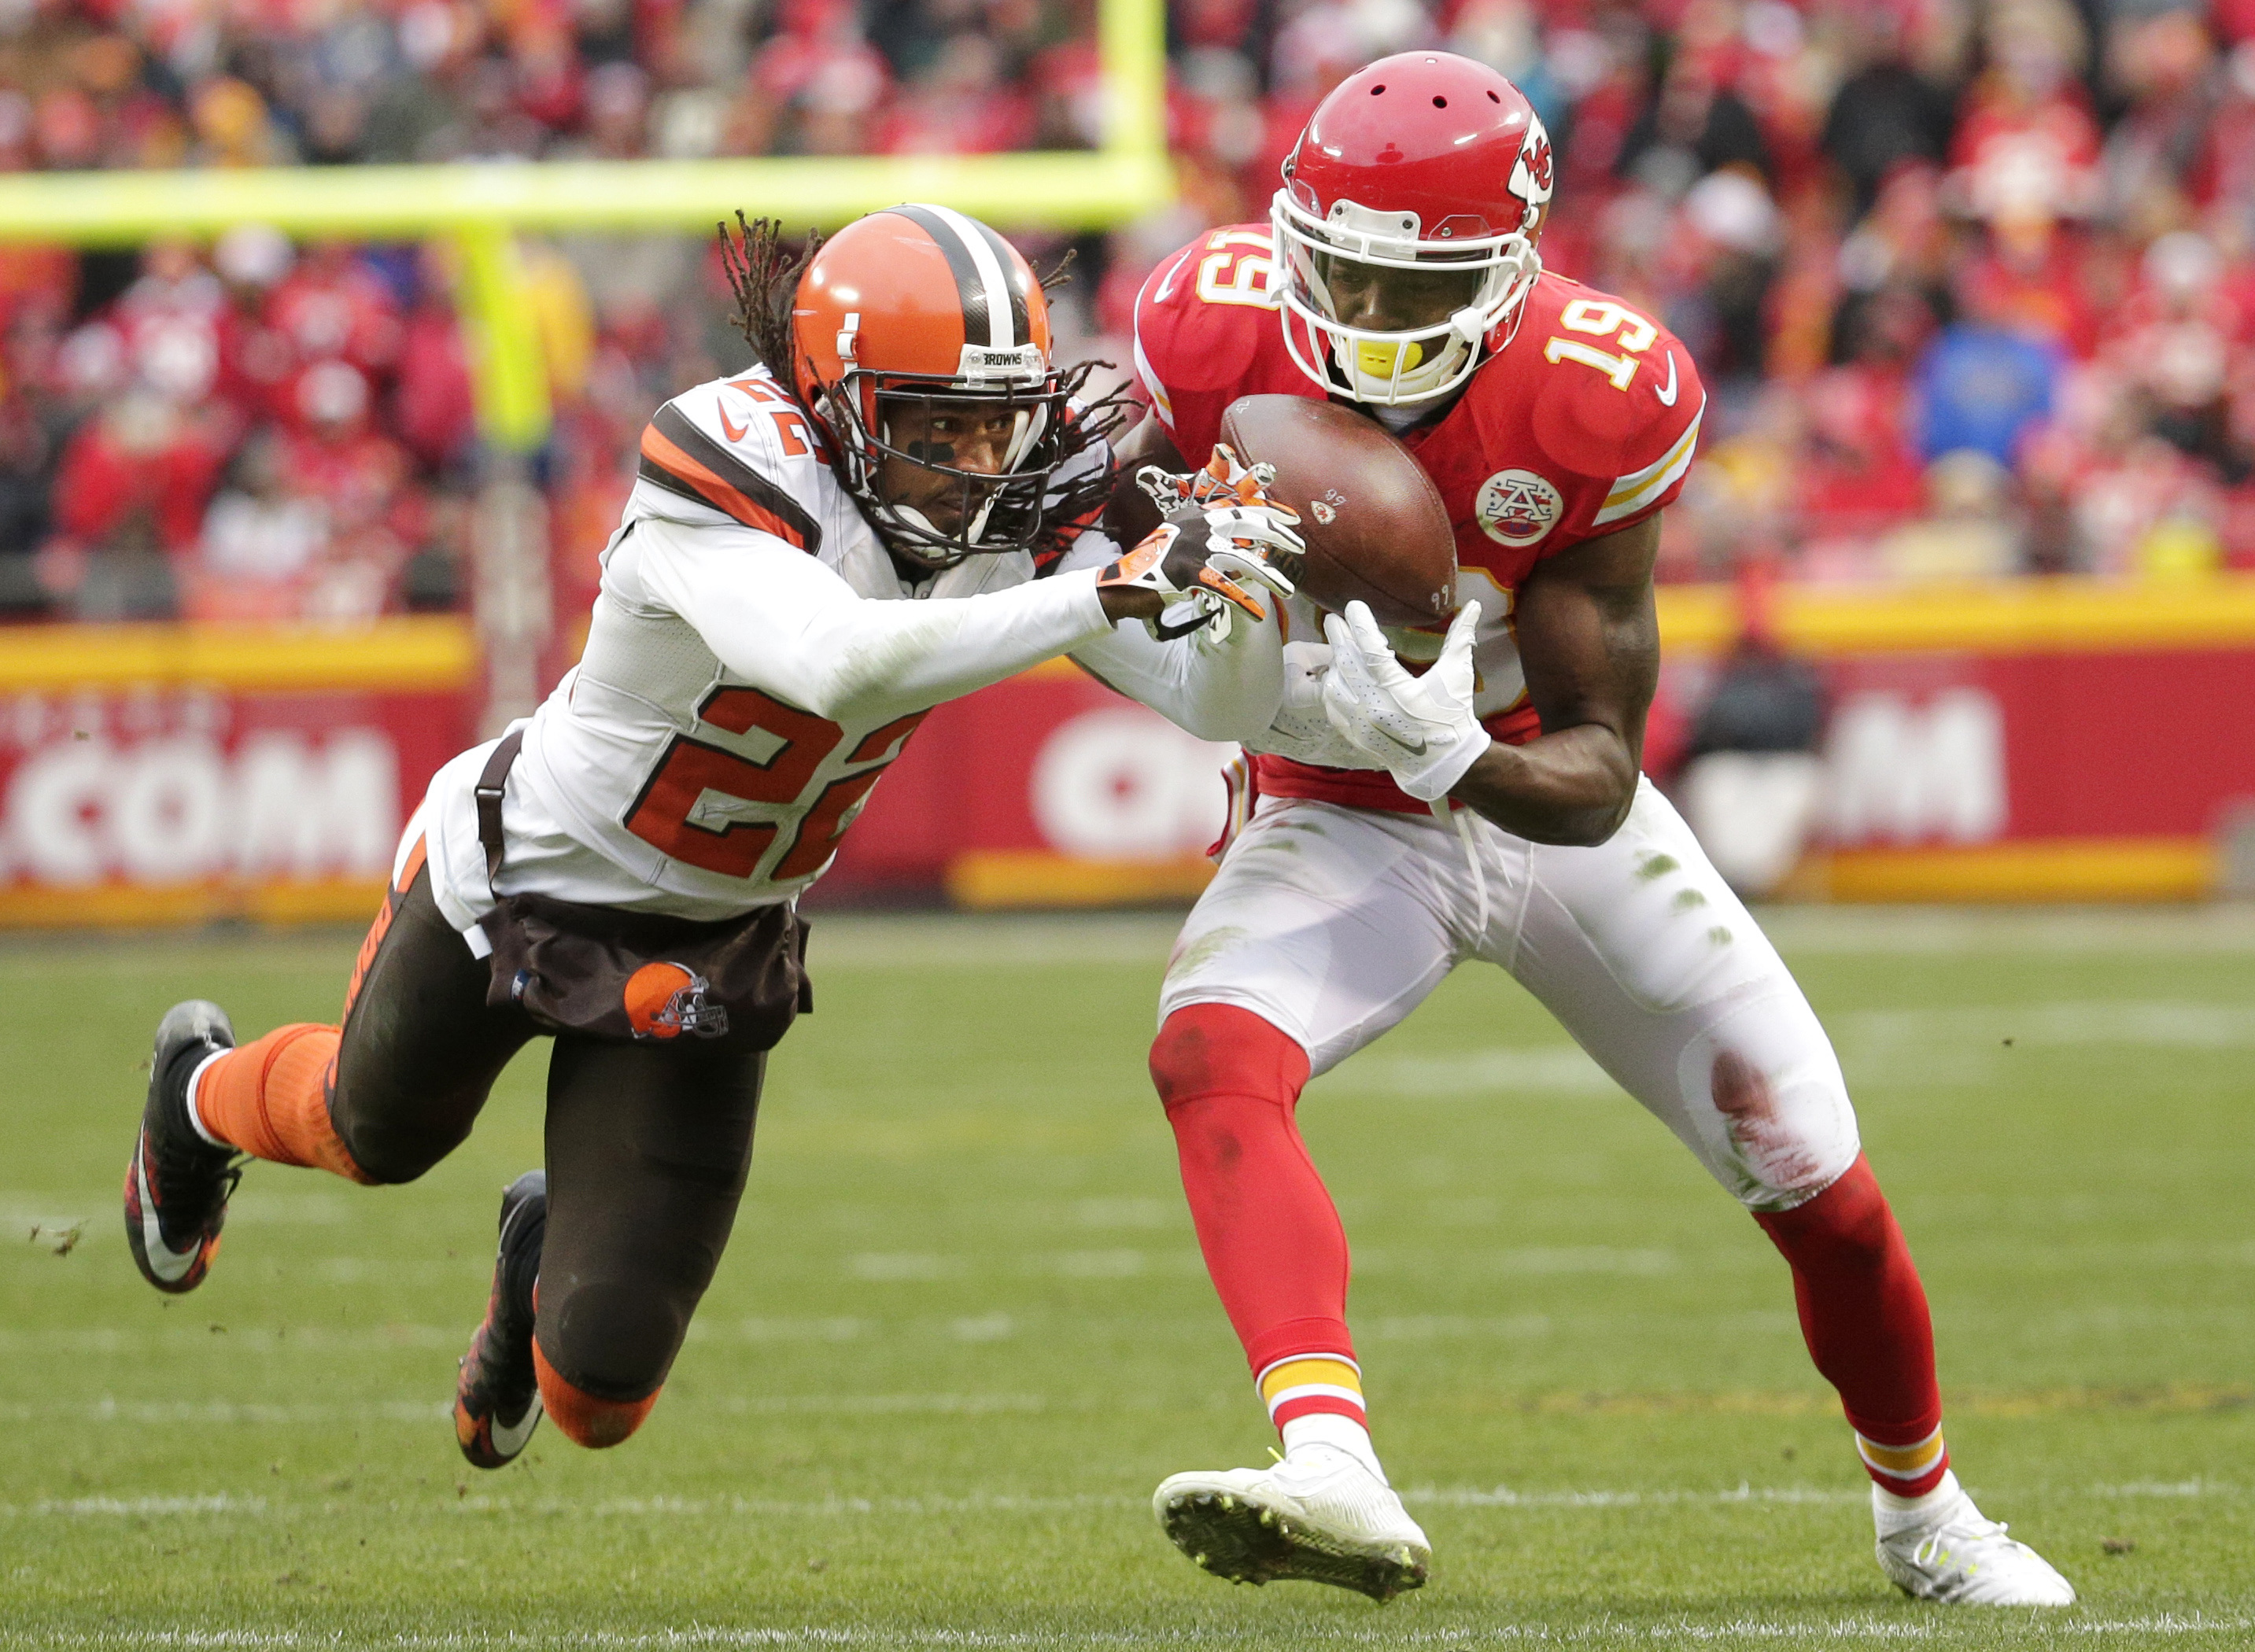 Kansas City Chiefs wide receiver Jeremy Maclin (19) makes a catch against Cleveland Browns cornerback Tramon Williams (22) during the second half of an NFL football game in Kansas City, Mo., Sunday, Dec. 27, 2015. (AP Photo/Charlie Riedel)